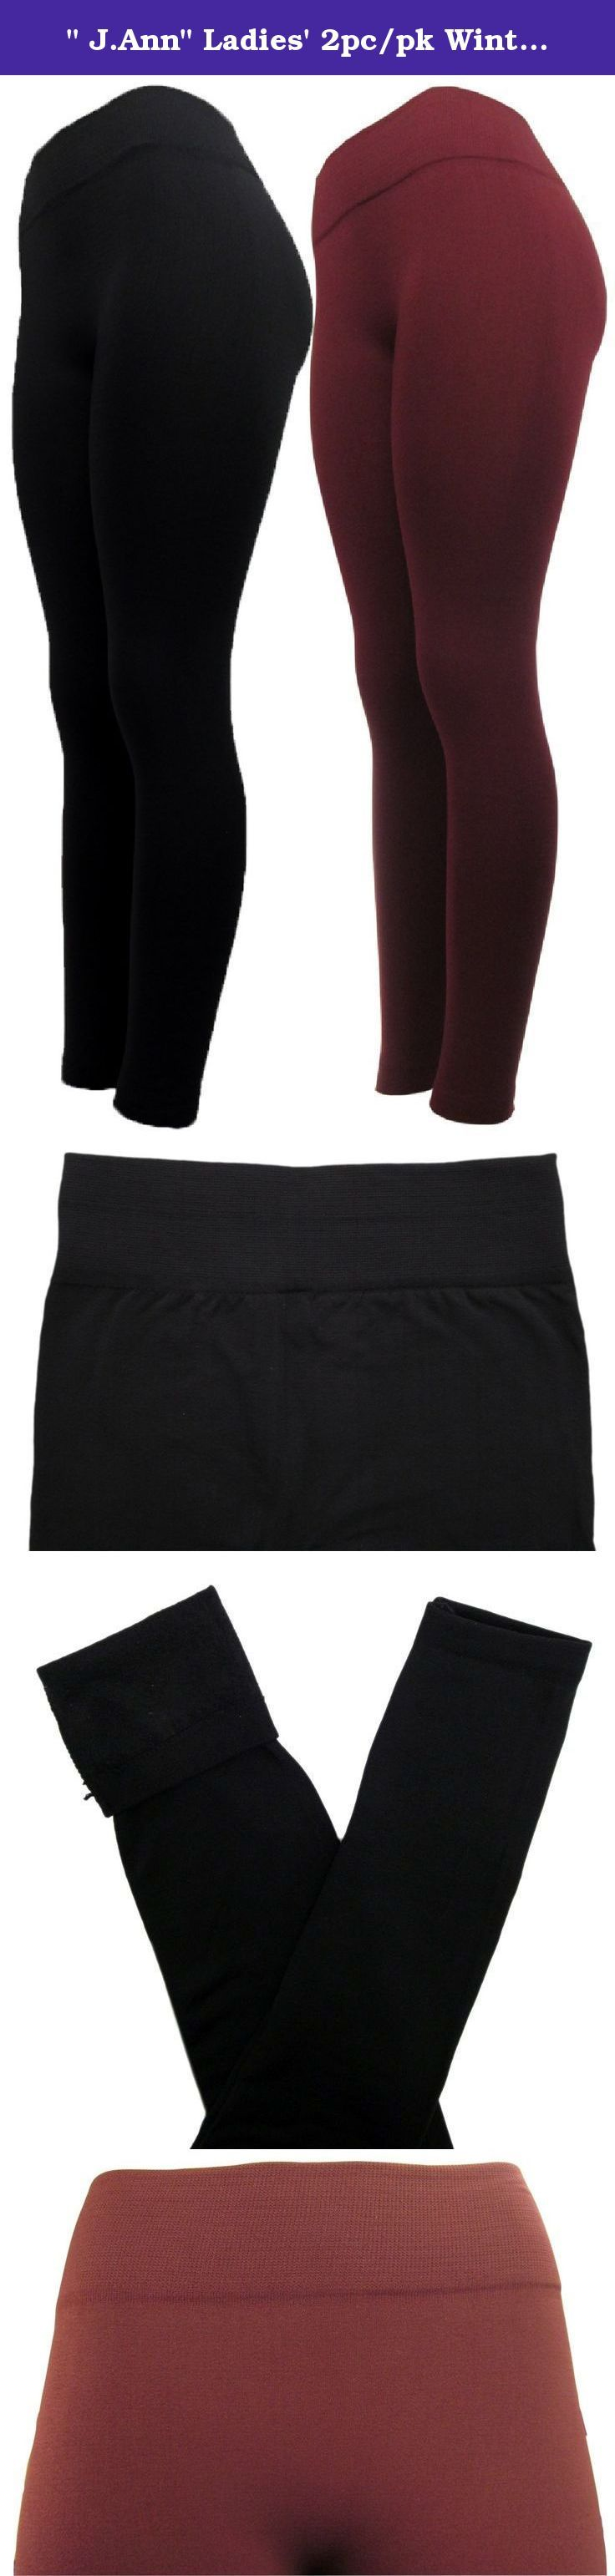 """"""" J.Ann"""" Ladies' 2pc/pk Winter Fleece Lined Leggings, Free Size, Color : Black_Burgundy. """"J.Ann"""" Ladies Fleece Leggings With reinforced waist and with super soft brushed fleece lined interior, It is opaque enough to be work with a tunic,skirt or ever paired with shorts, Can be dressed up with heels or just be worn to keep cozy at home.This is a."""